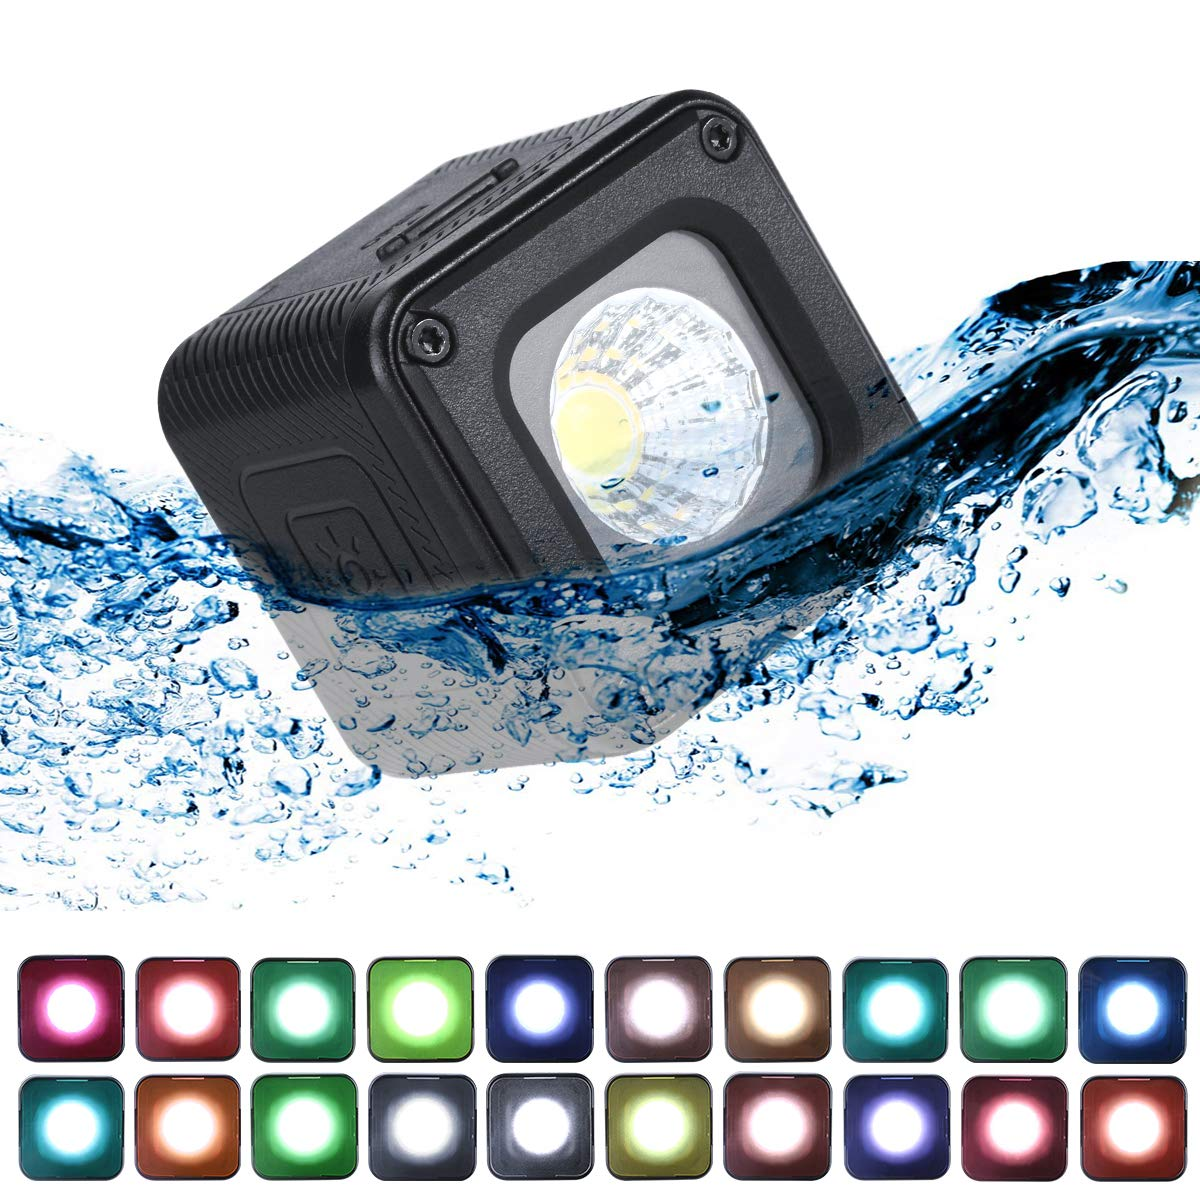 ULANZI L1 Pro Versatile Mini LED Light Waterproof LED Lighting with 20 Color Gels for Smartphone Camera Drone Photography,Video, Underwater,Compatible w DJI OSMO Action Gopro 7 6 5 iPhone DSLR Cameras by ULANZI